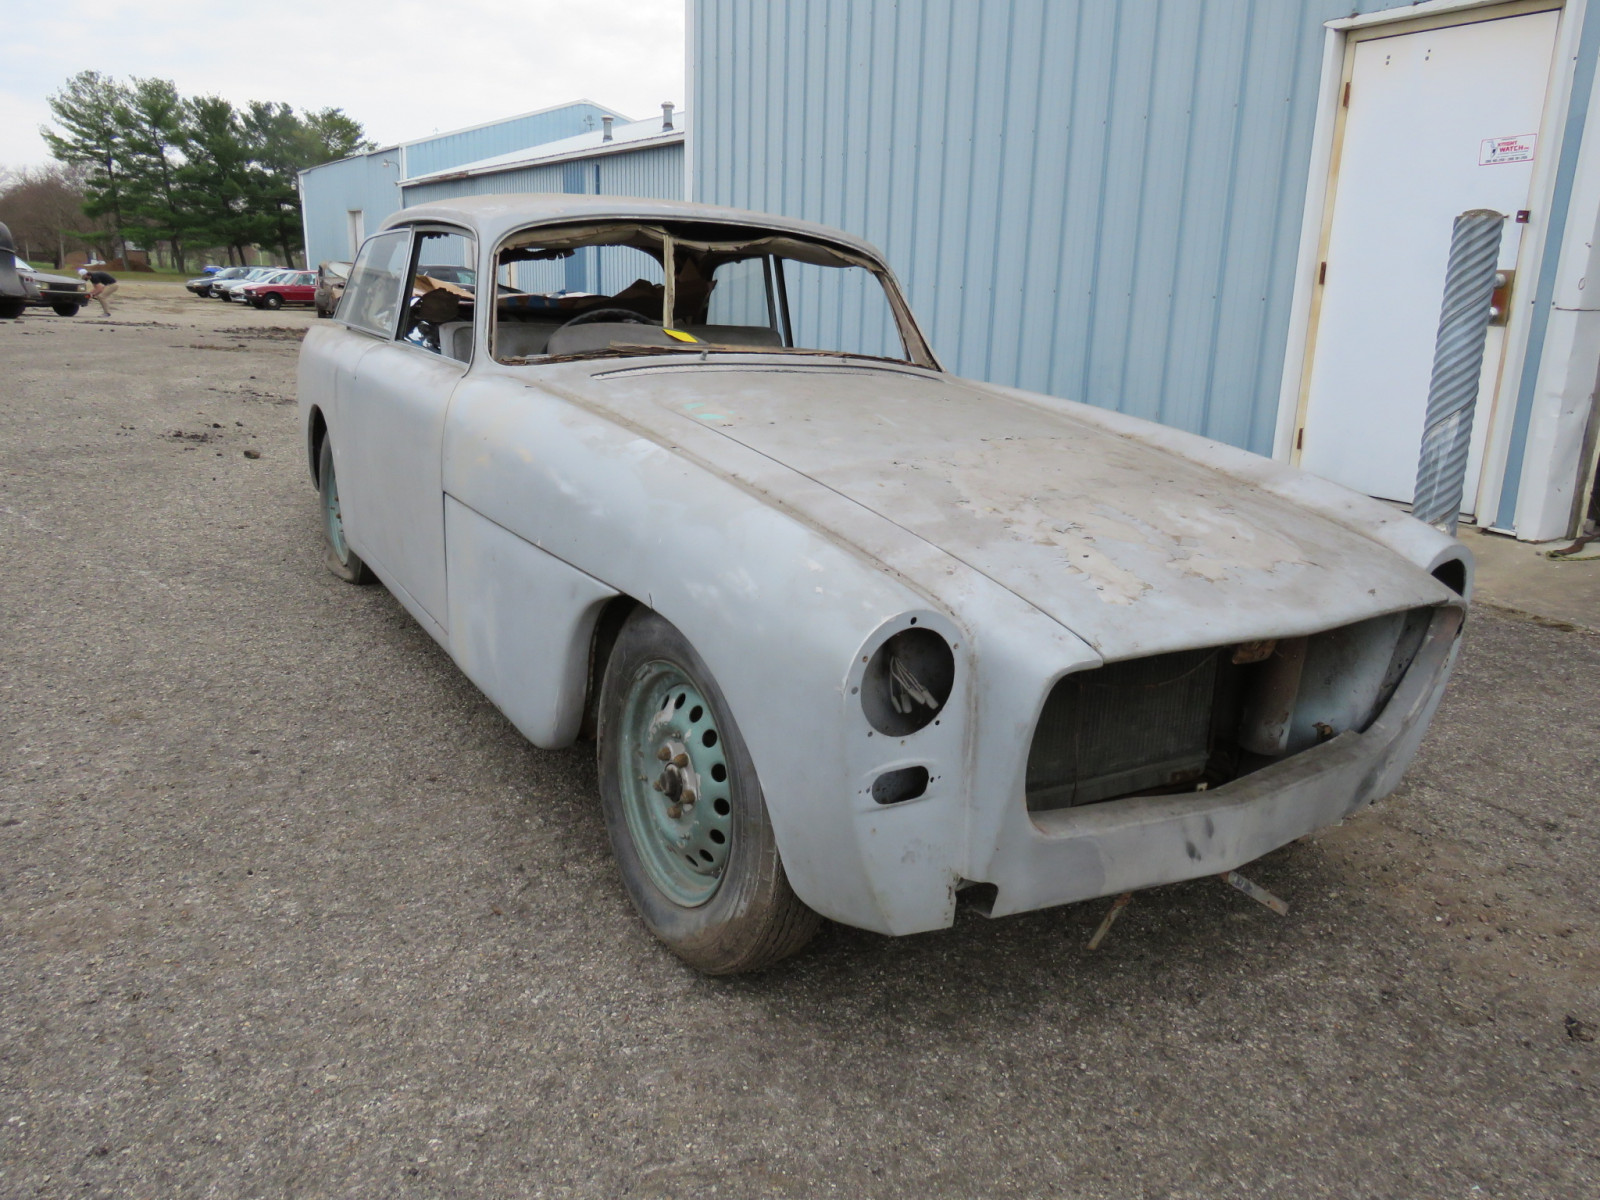 Bristol 2dr Sedan Project - Image 1